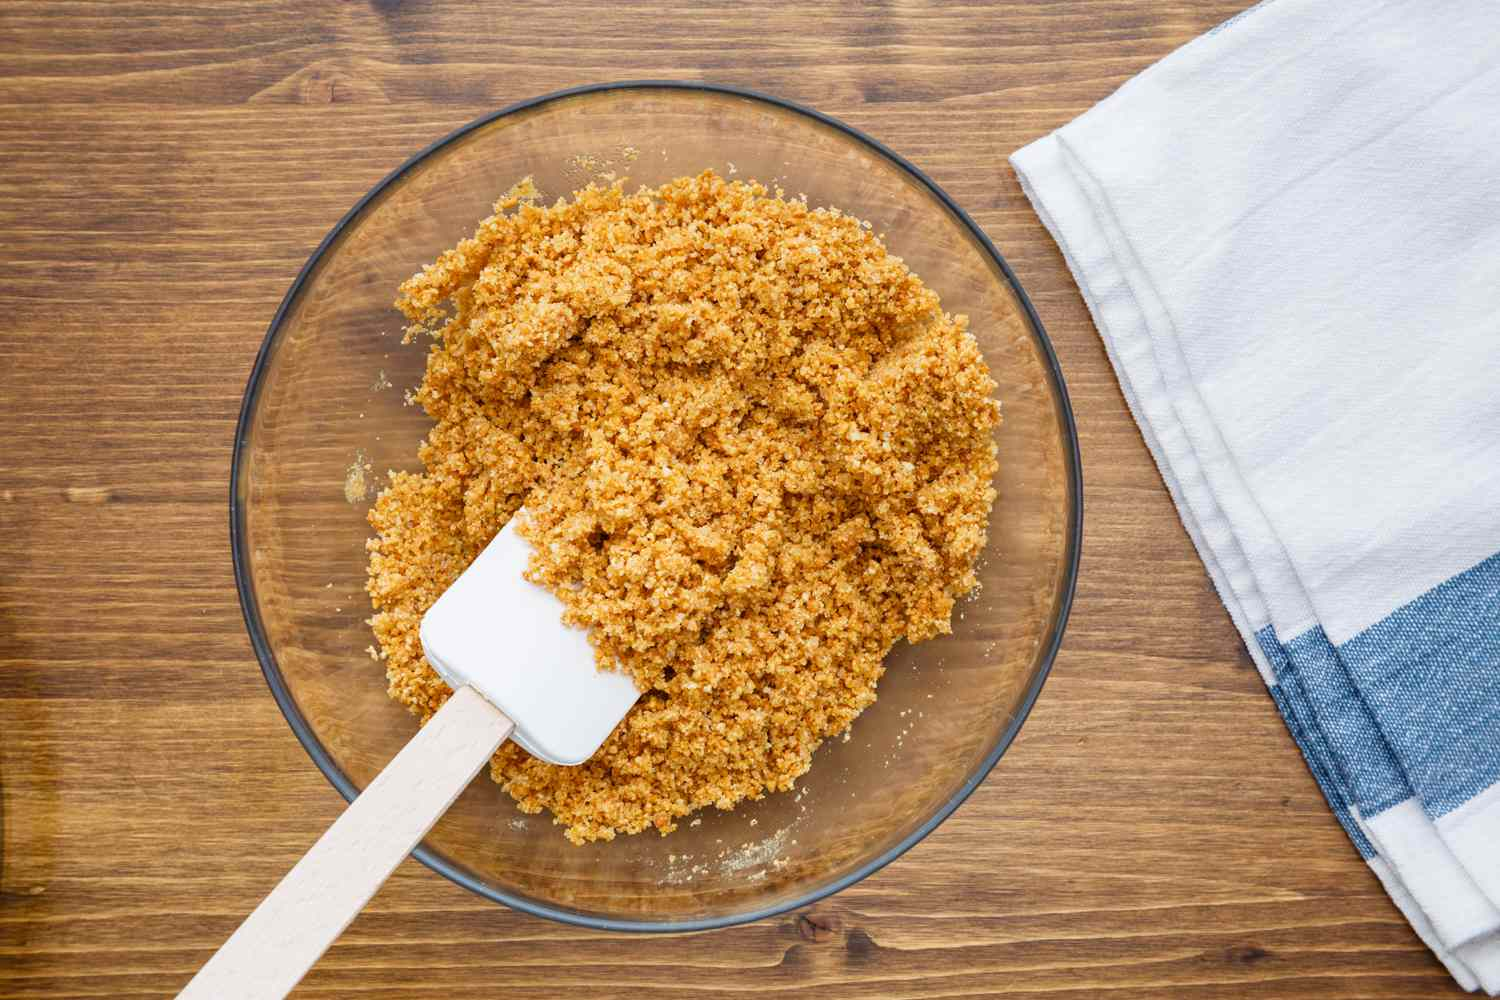 Pour crumbs in bowl